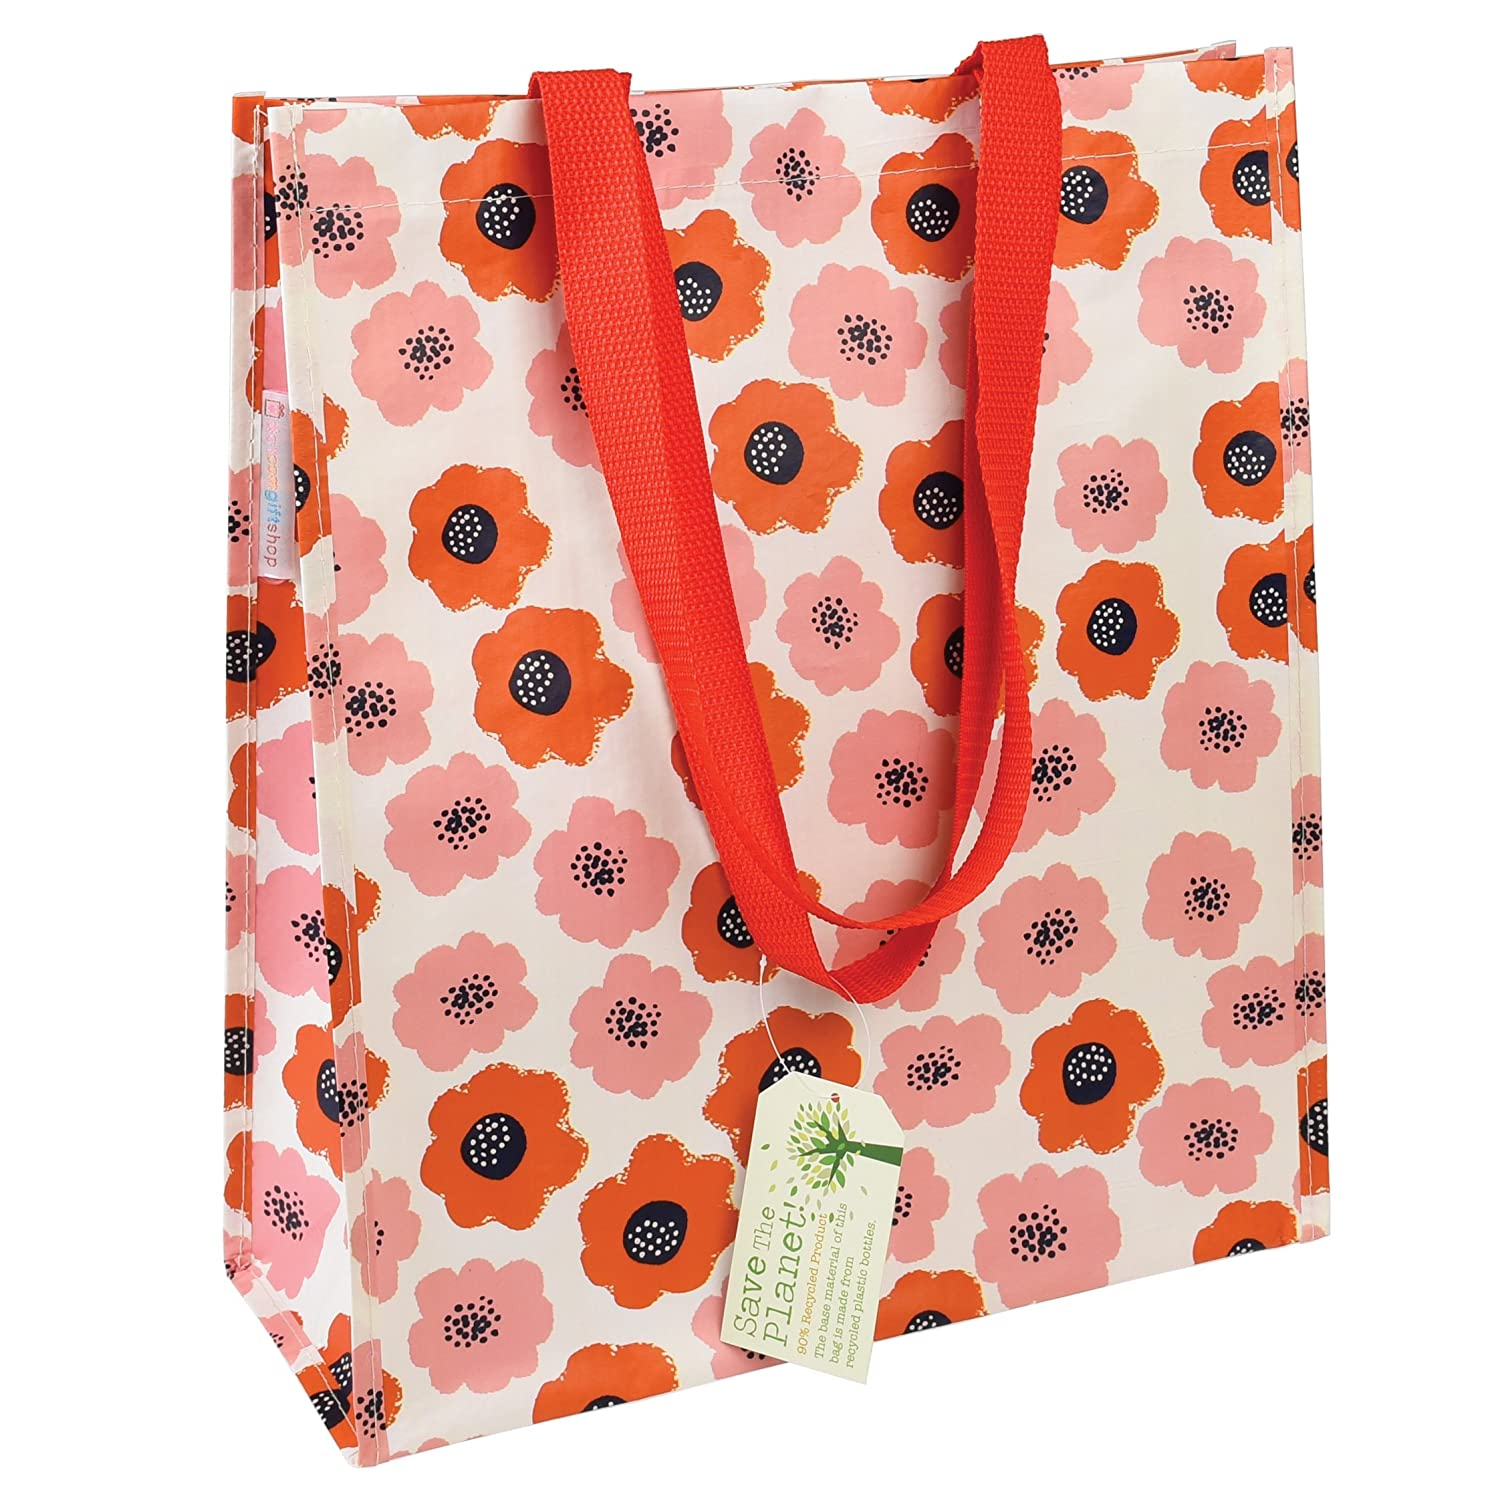 dotcomgiftshop Reusable Eco-friendly Shopper Bags - Choice Of Floral Design (Daisy) 25642